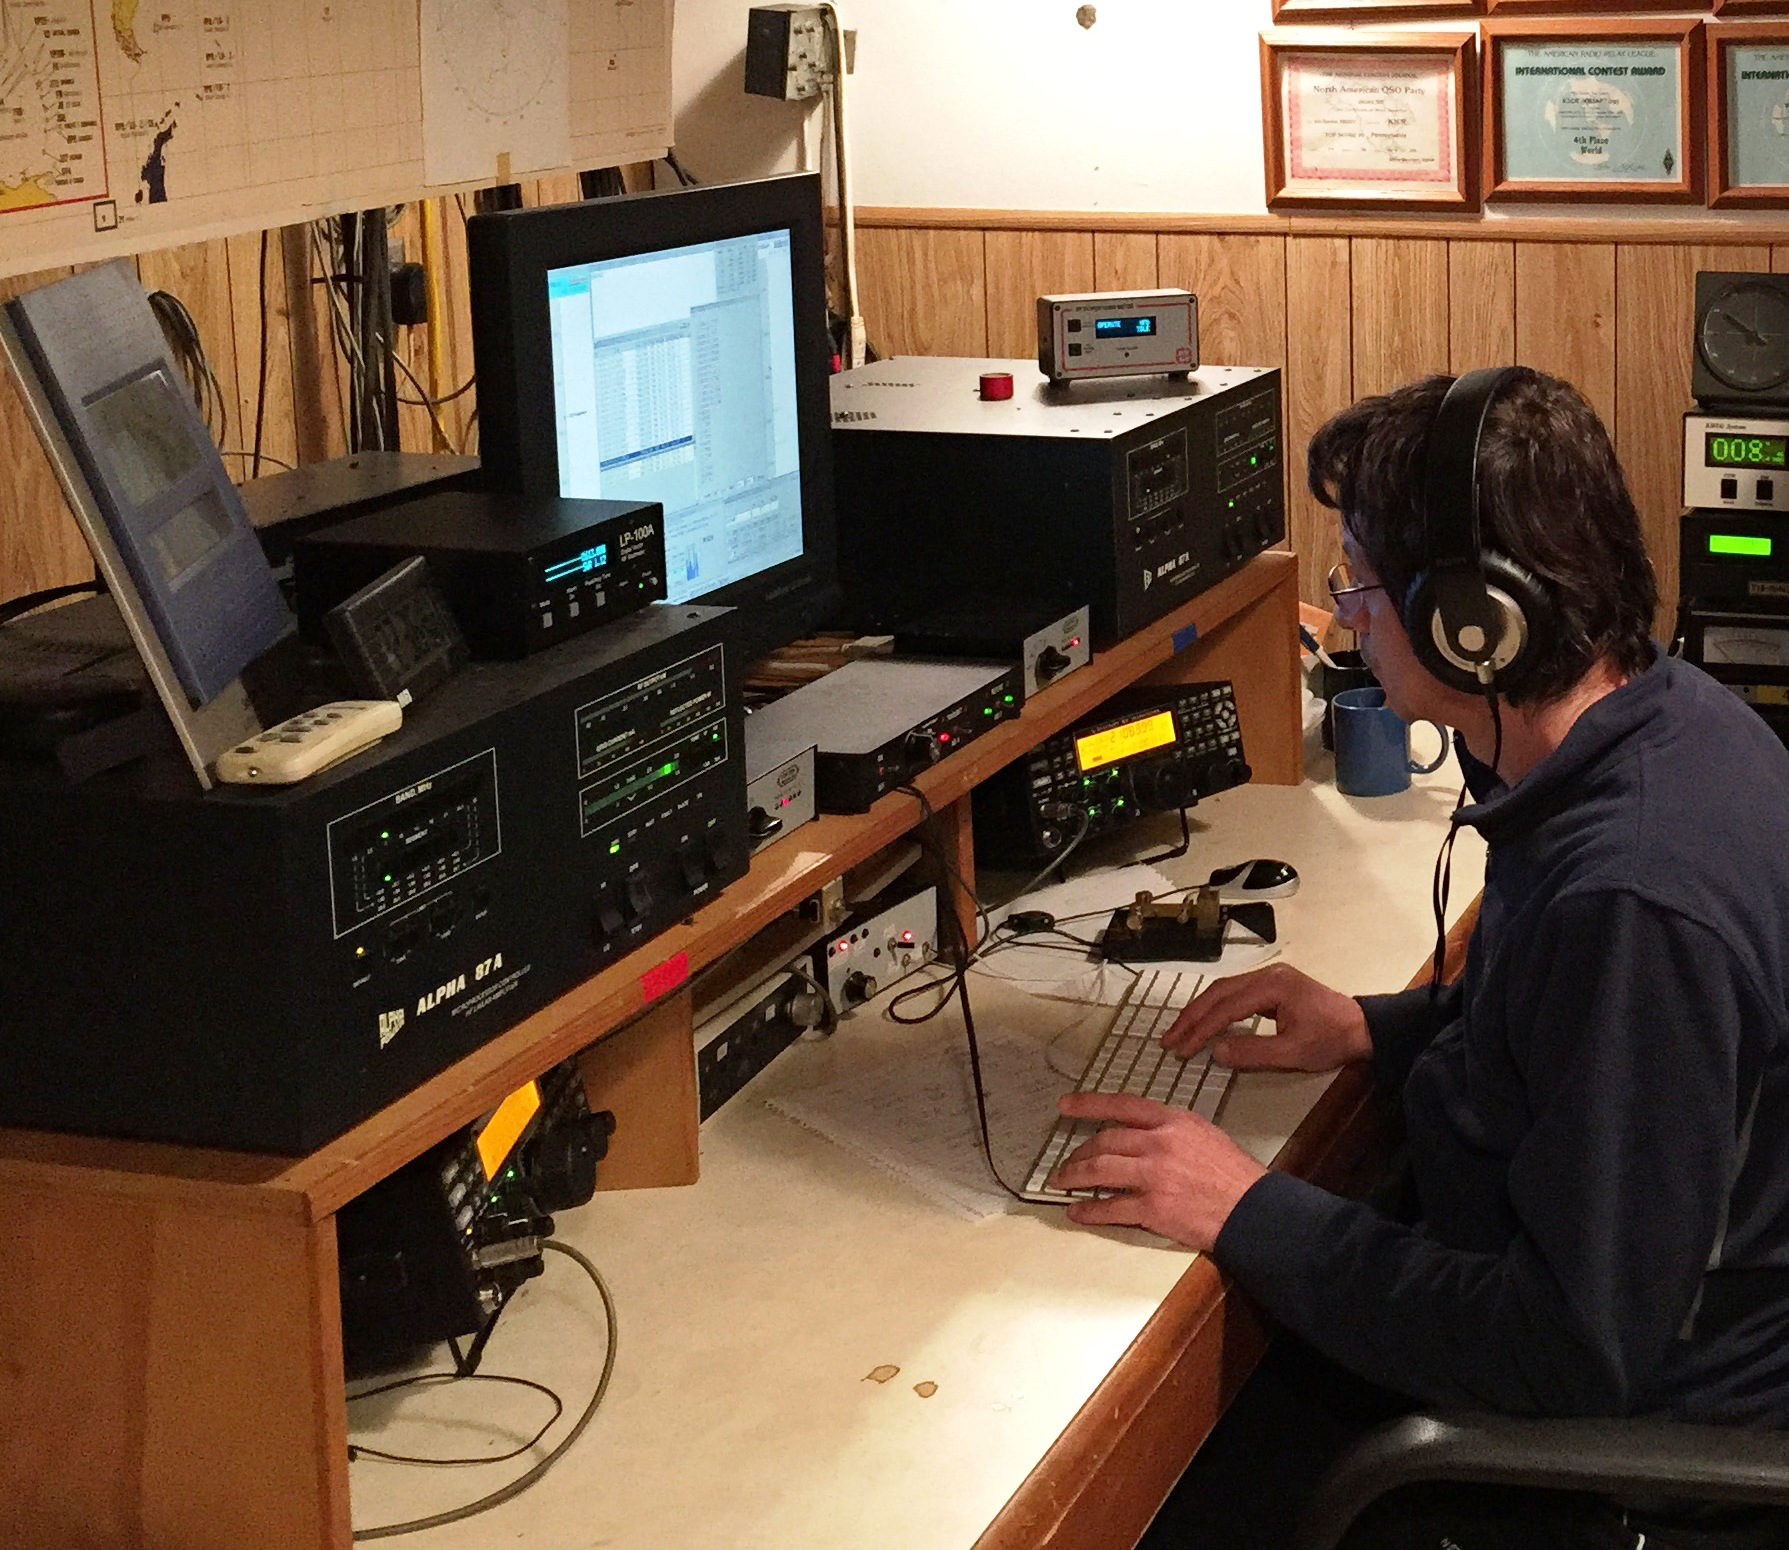 Arrl sweepstakes submission